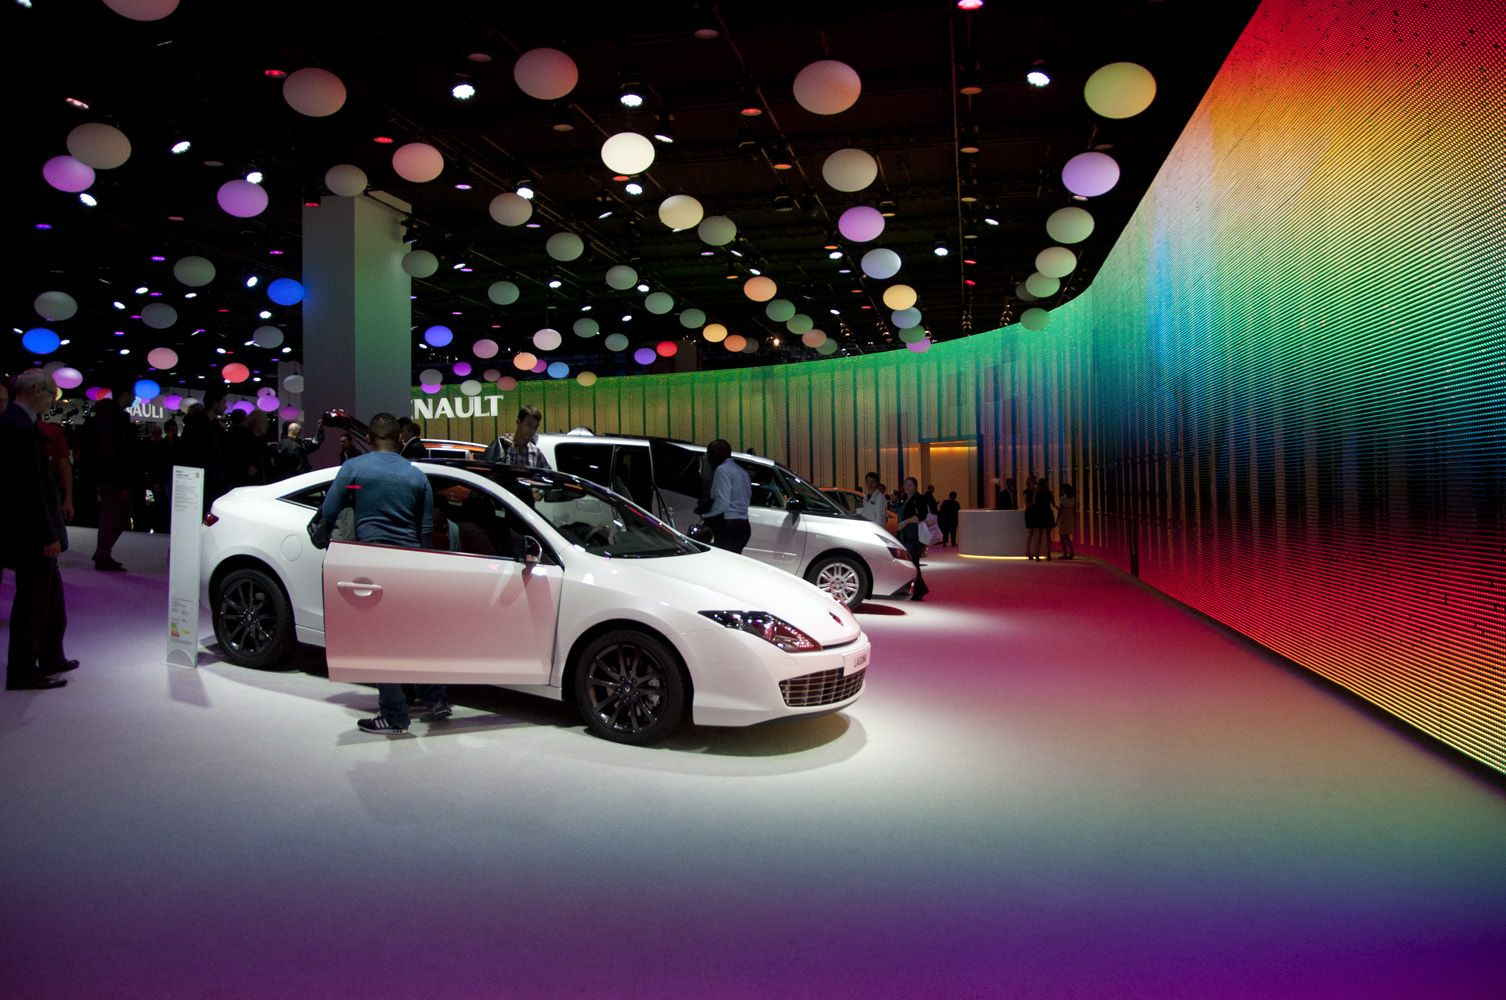 LightingWalls HFT Advanced Events Assignment Pinterest - Led car show lights